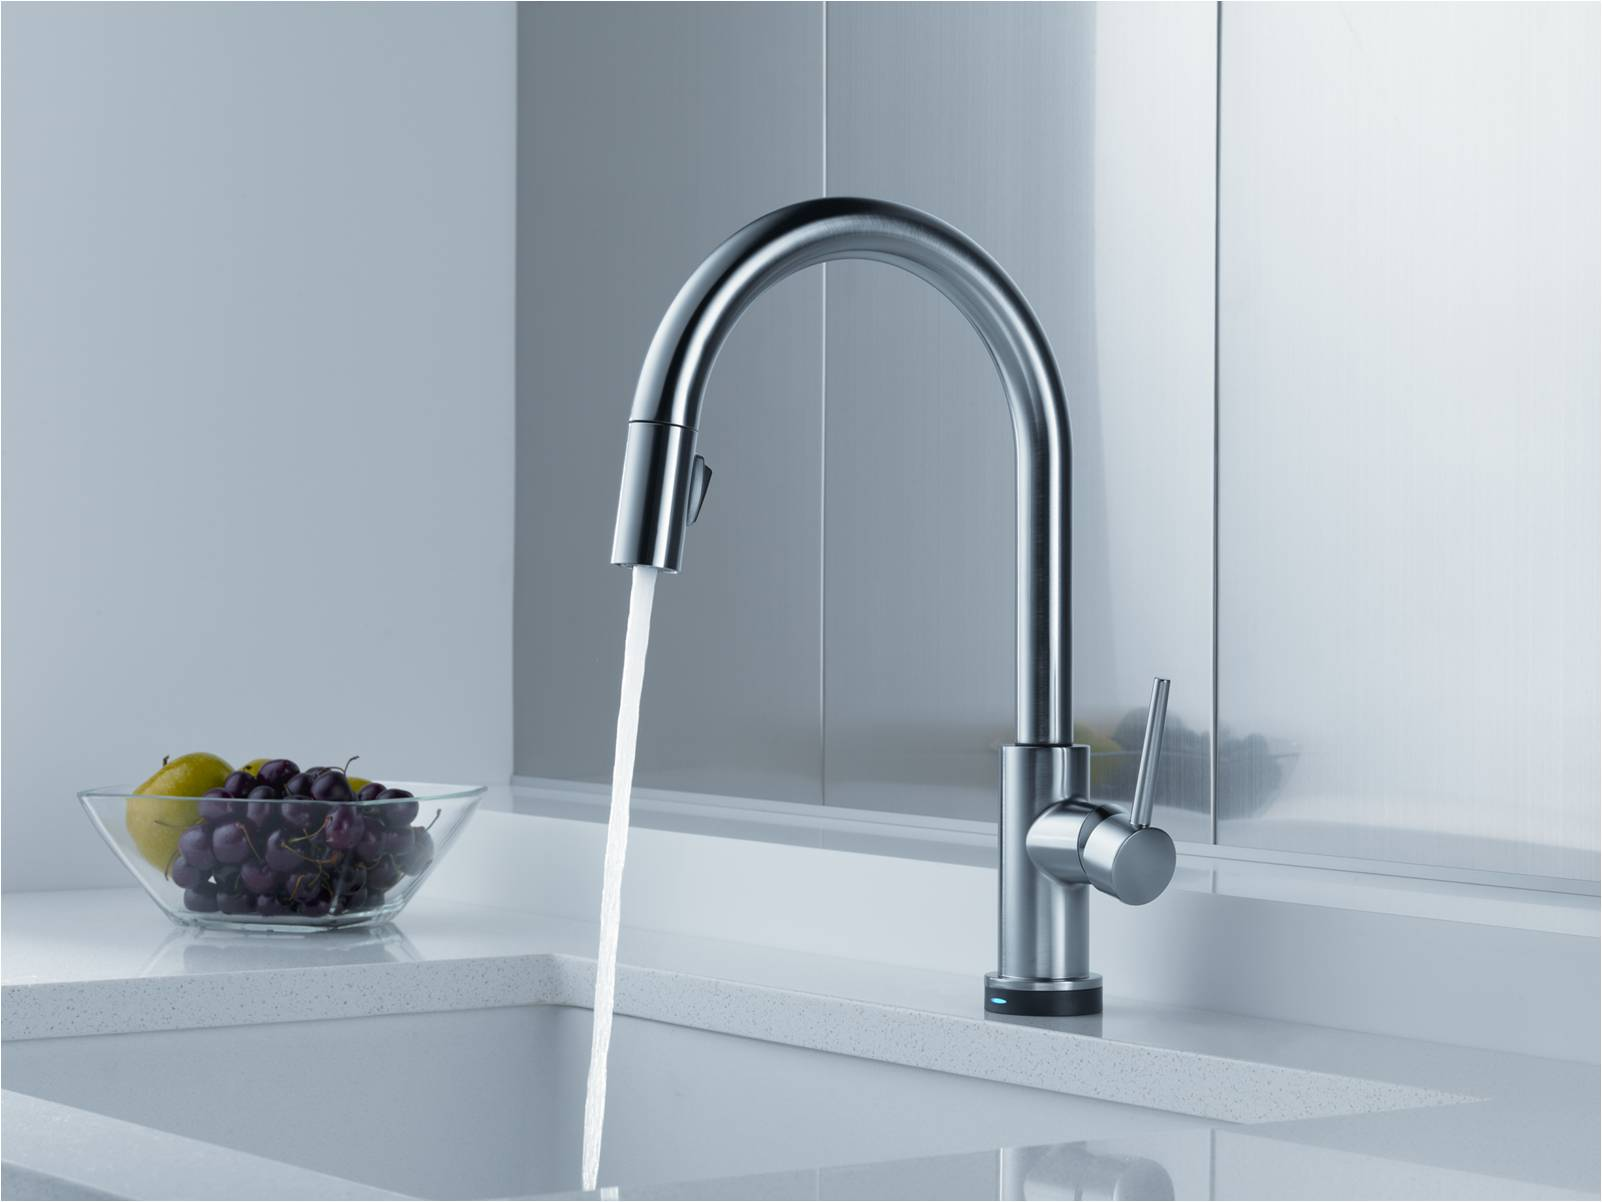 Kitchen Faucet Running Water by ZVEREV | AudioJungle